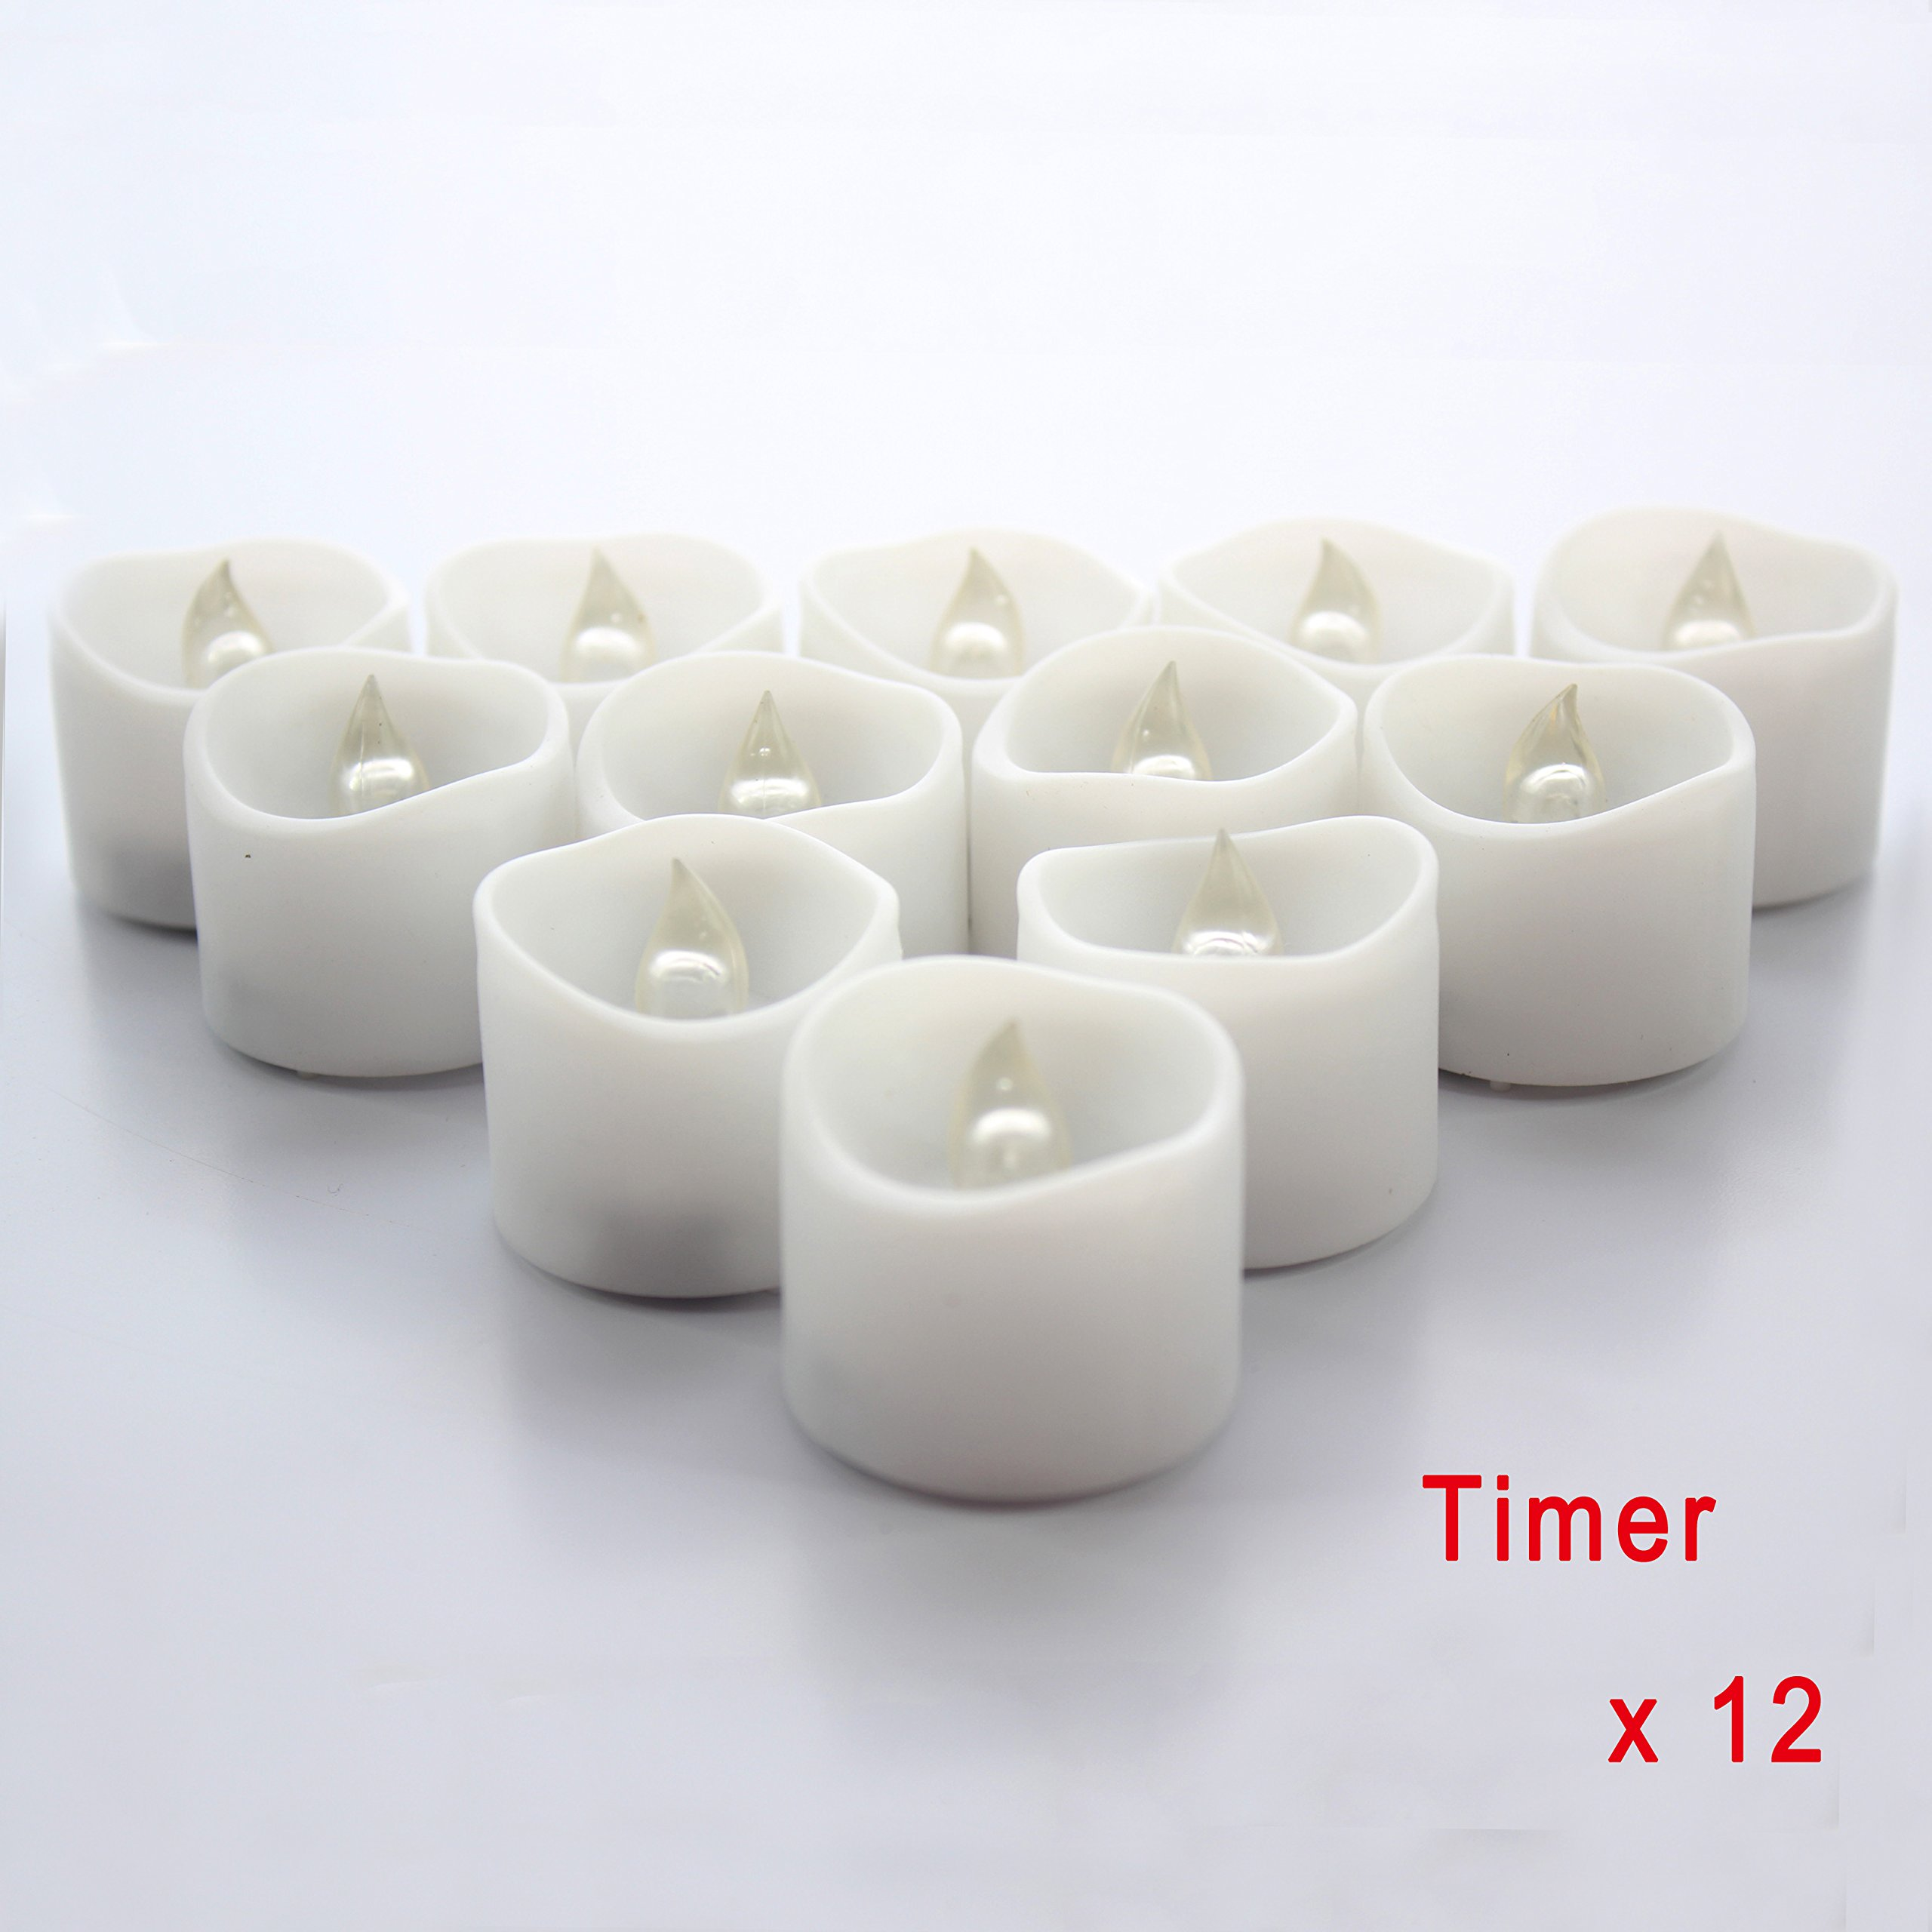 Battery LED Candles with Timer - 12 Small Flickering Flameless Tealight with Timer, 6 Hours on and 18 Hours Off, Dia. 1.3''x1.3'' Height, Electric Candles, Votive Candles, Centerpieces, Wedding Decoration, Christmas Decoration